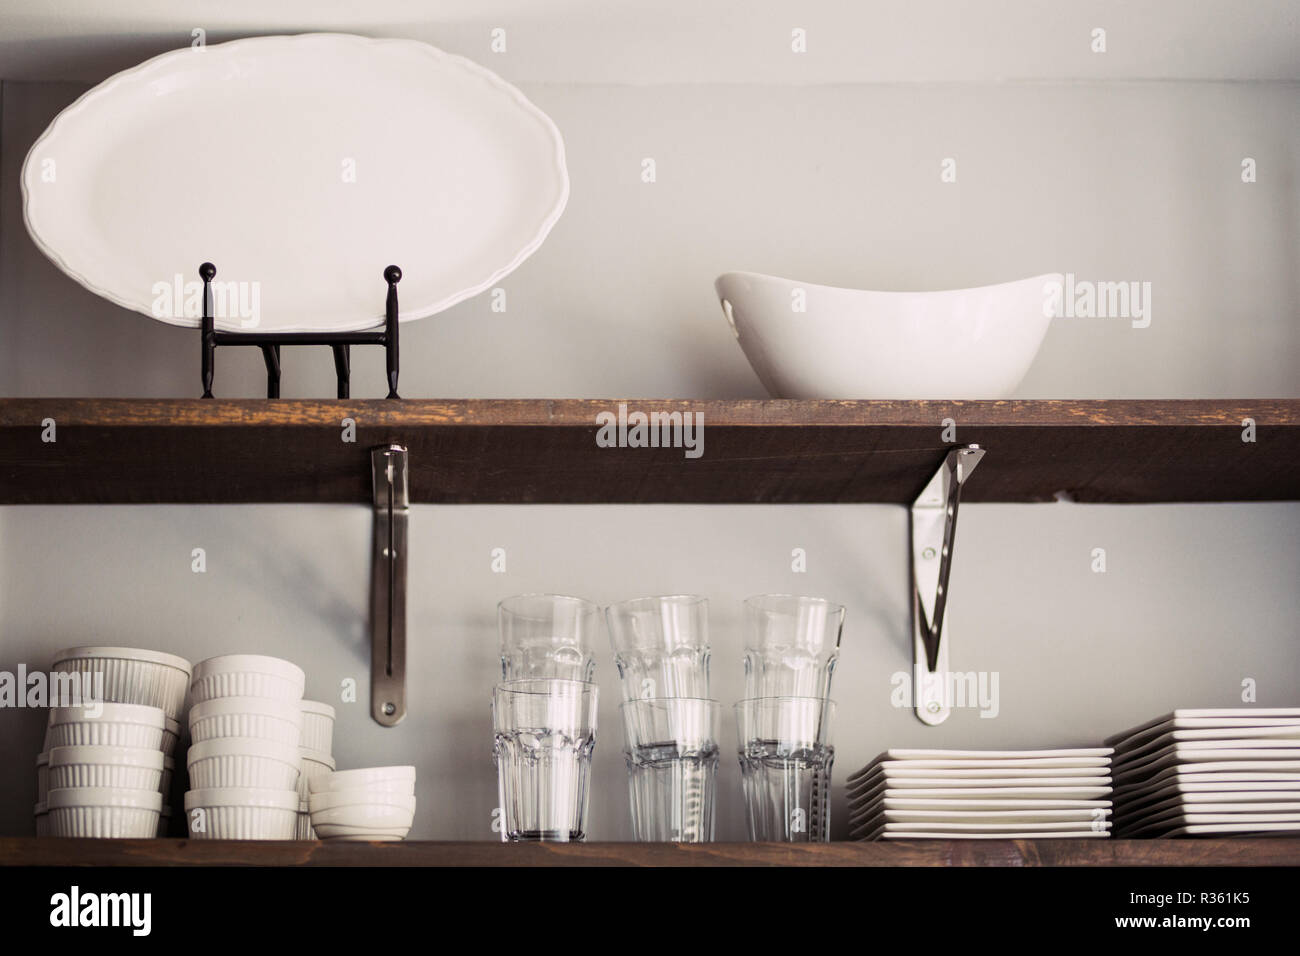 Plates Crockery Shelf Shelves Stock Photos & Plates Crockery Shelf Shelves Stock Images